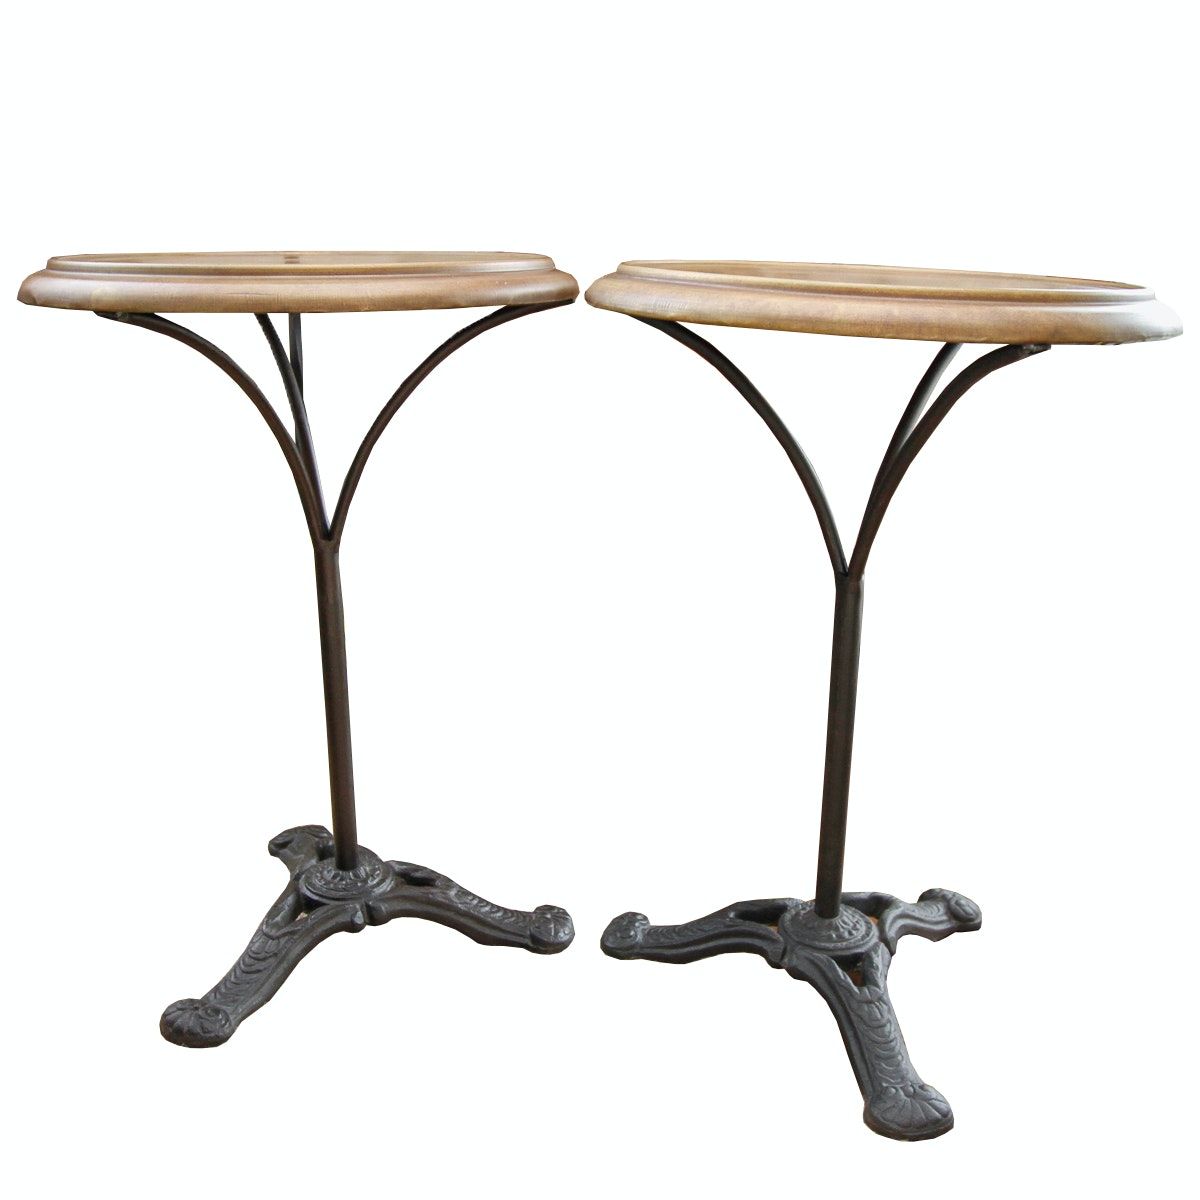 Pair of Accent Tables on Wrought Iron Bases